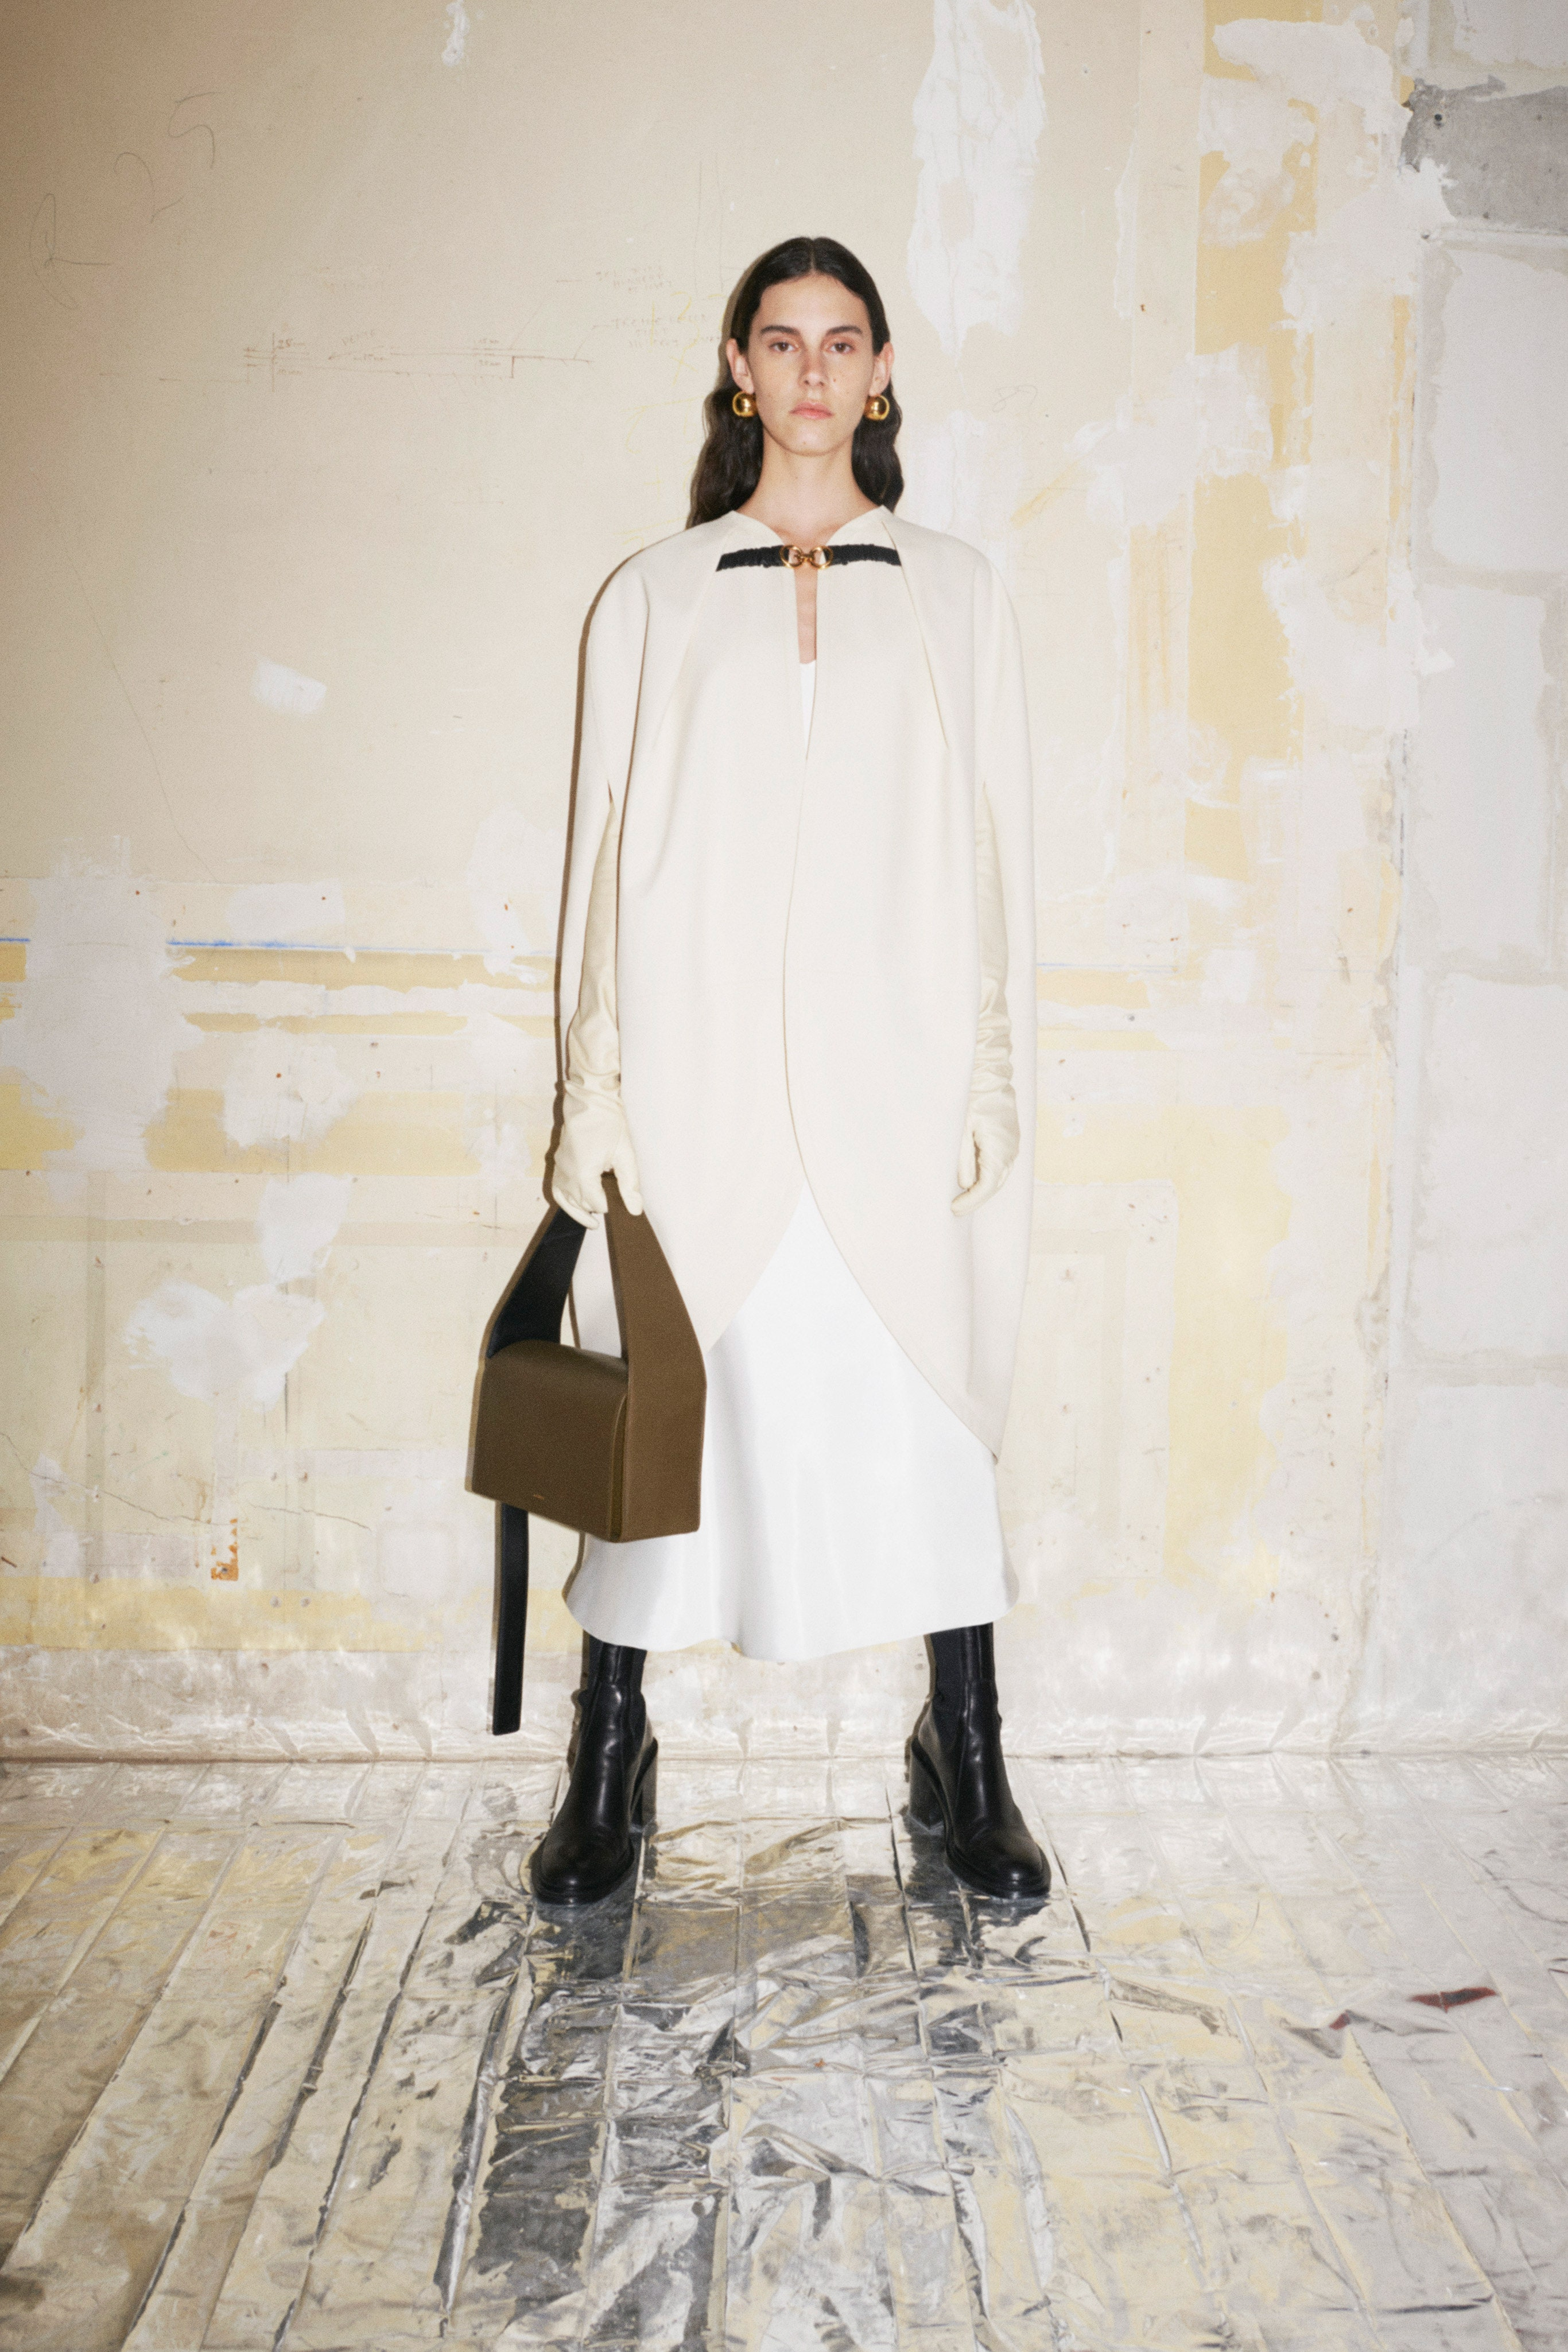 For walks in the fresh air: A seasonal collection of Jil Sander arrived at Asthik (photo 21)